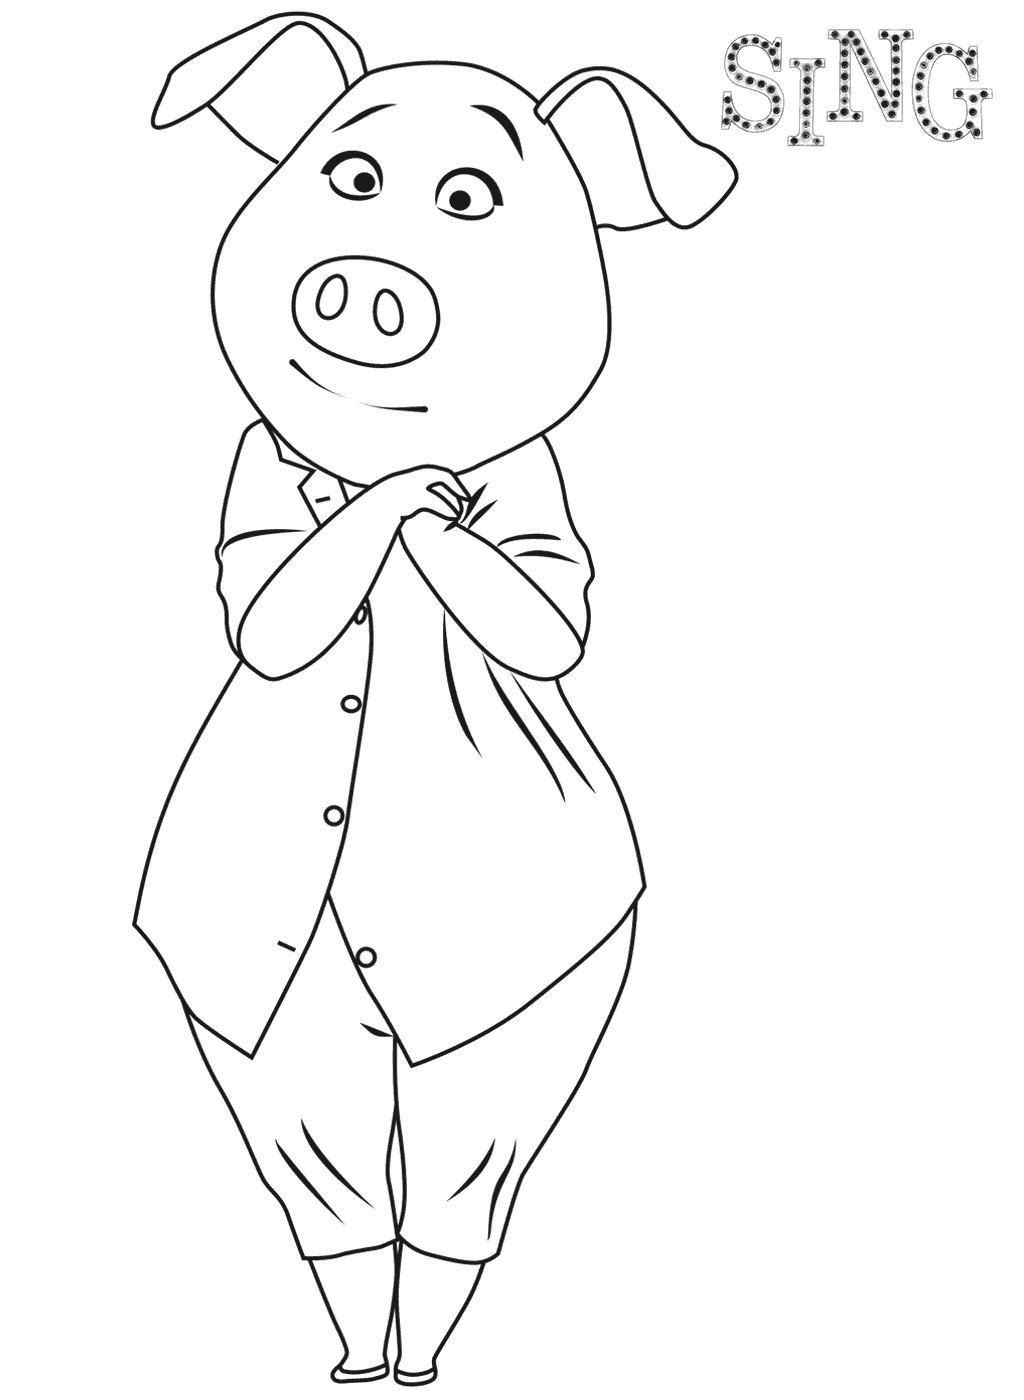 Sing for children - Sing Kids Coloring Pages